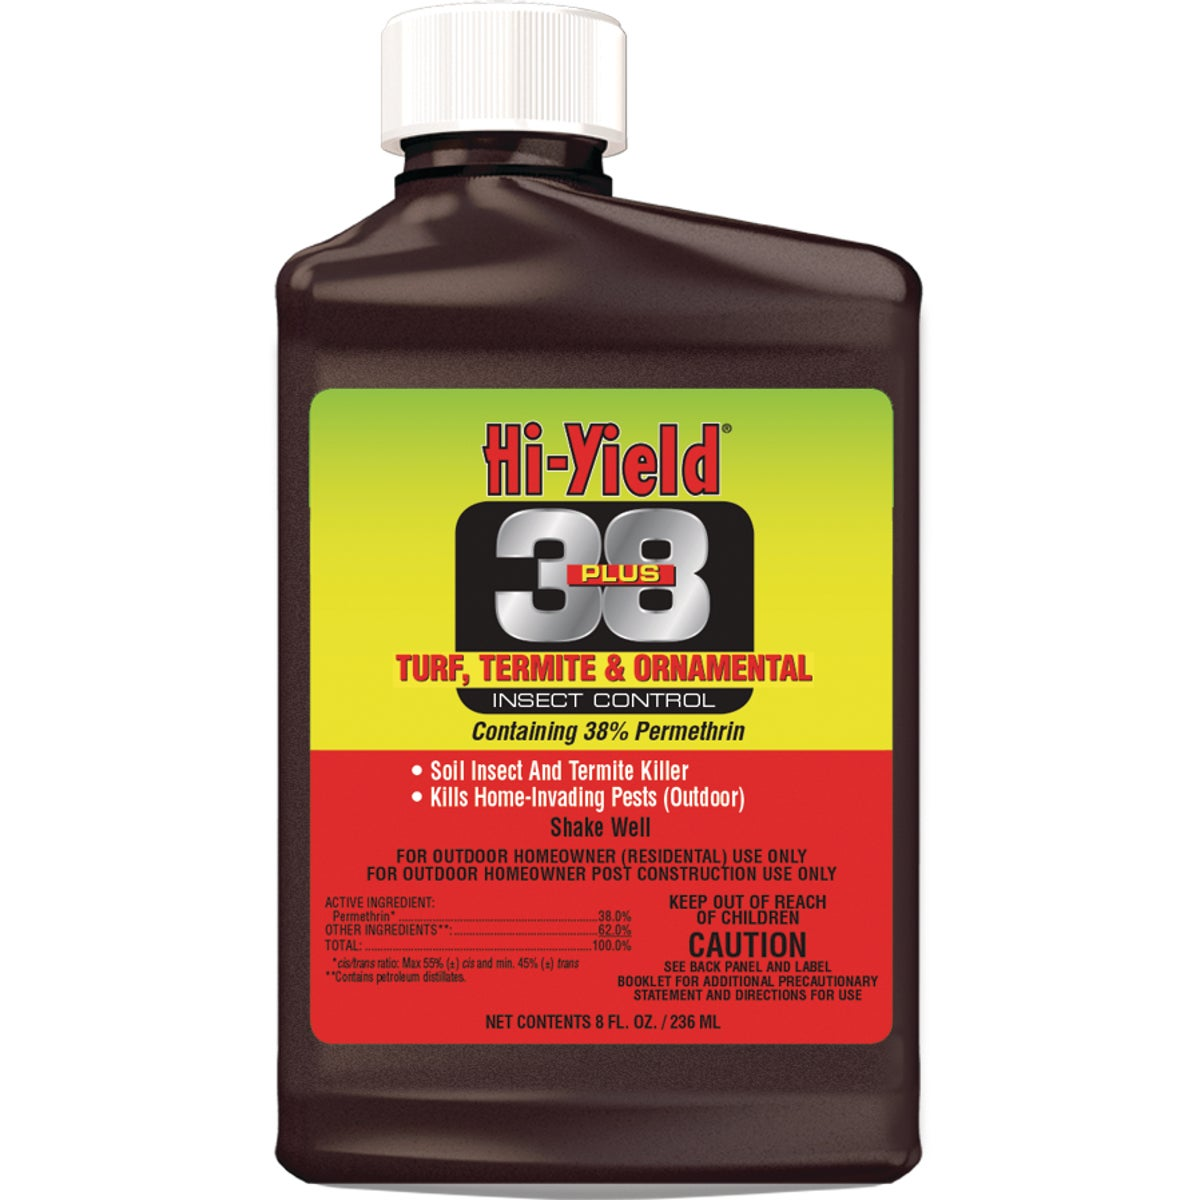 8OZ 38 PLUS - 31330 by Vpg Fertilome